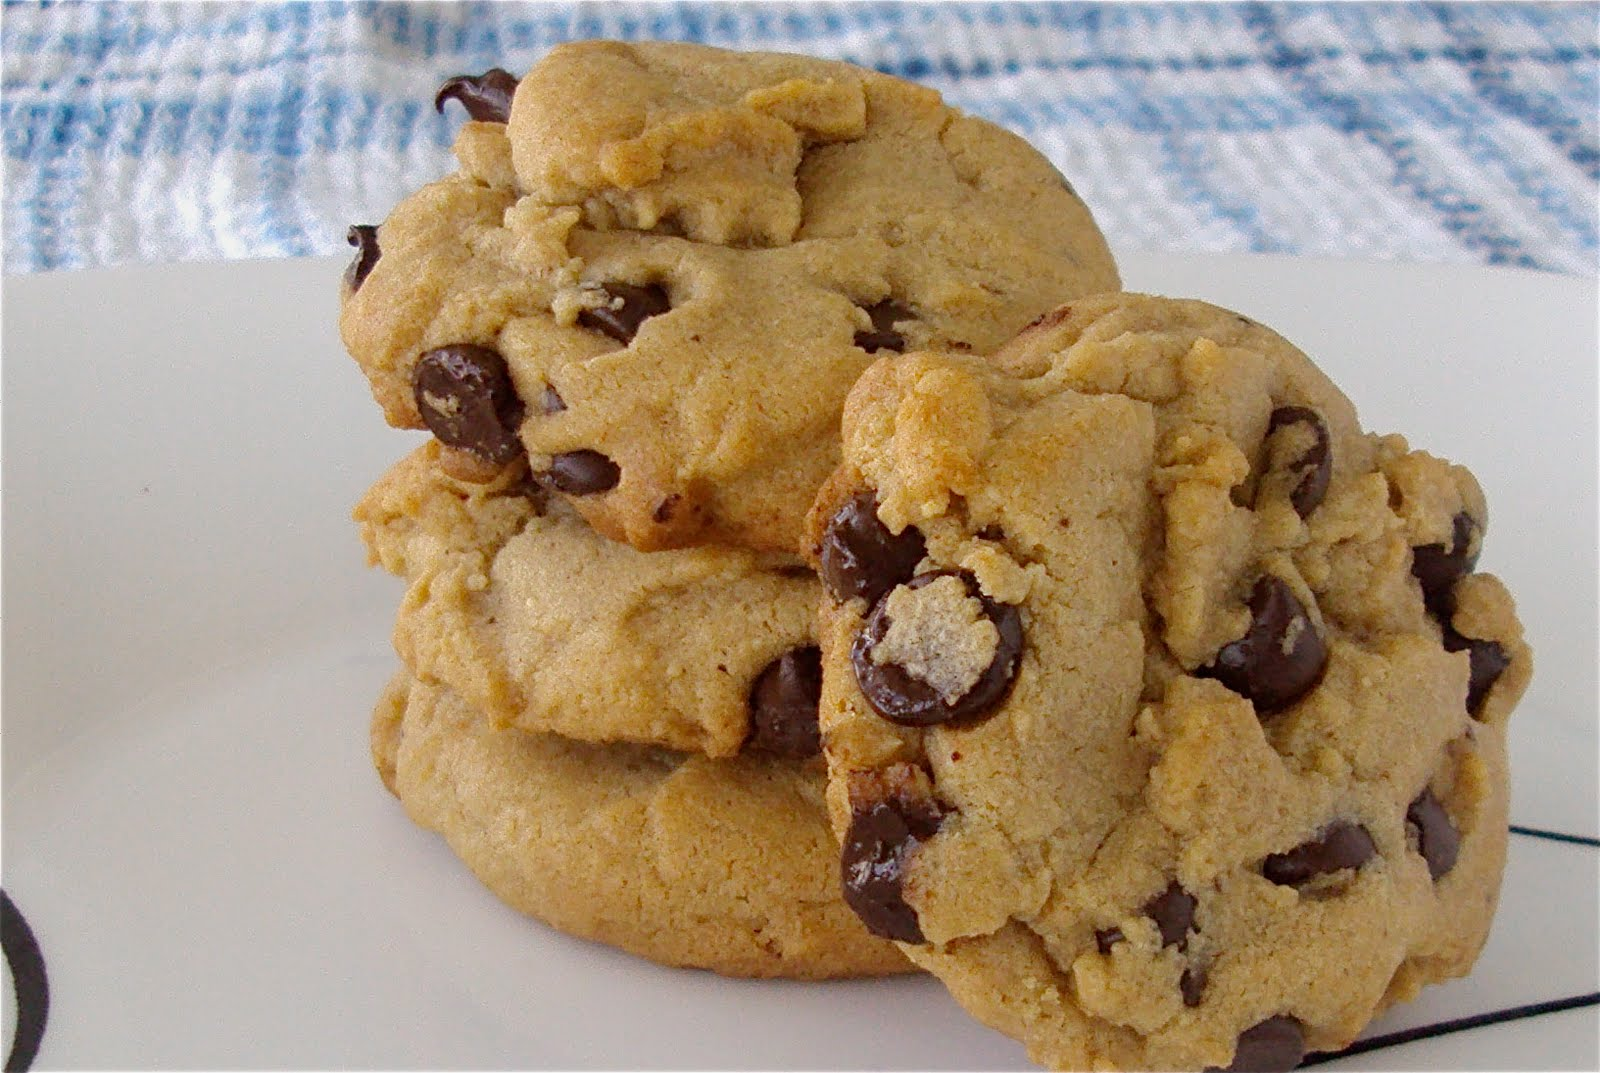 Leanne bakes: Peanut Butter Chocolate Chip Cookies